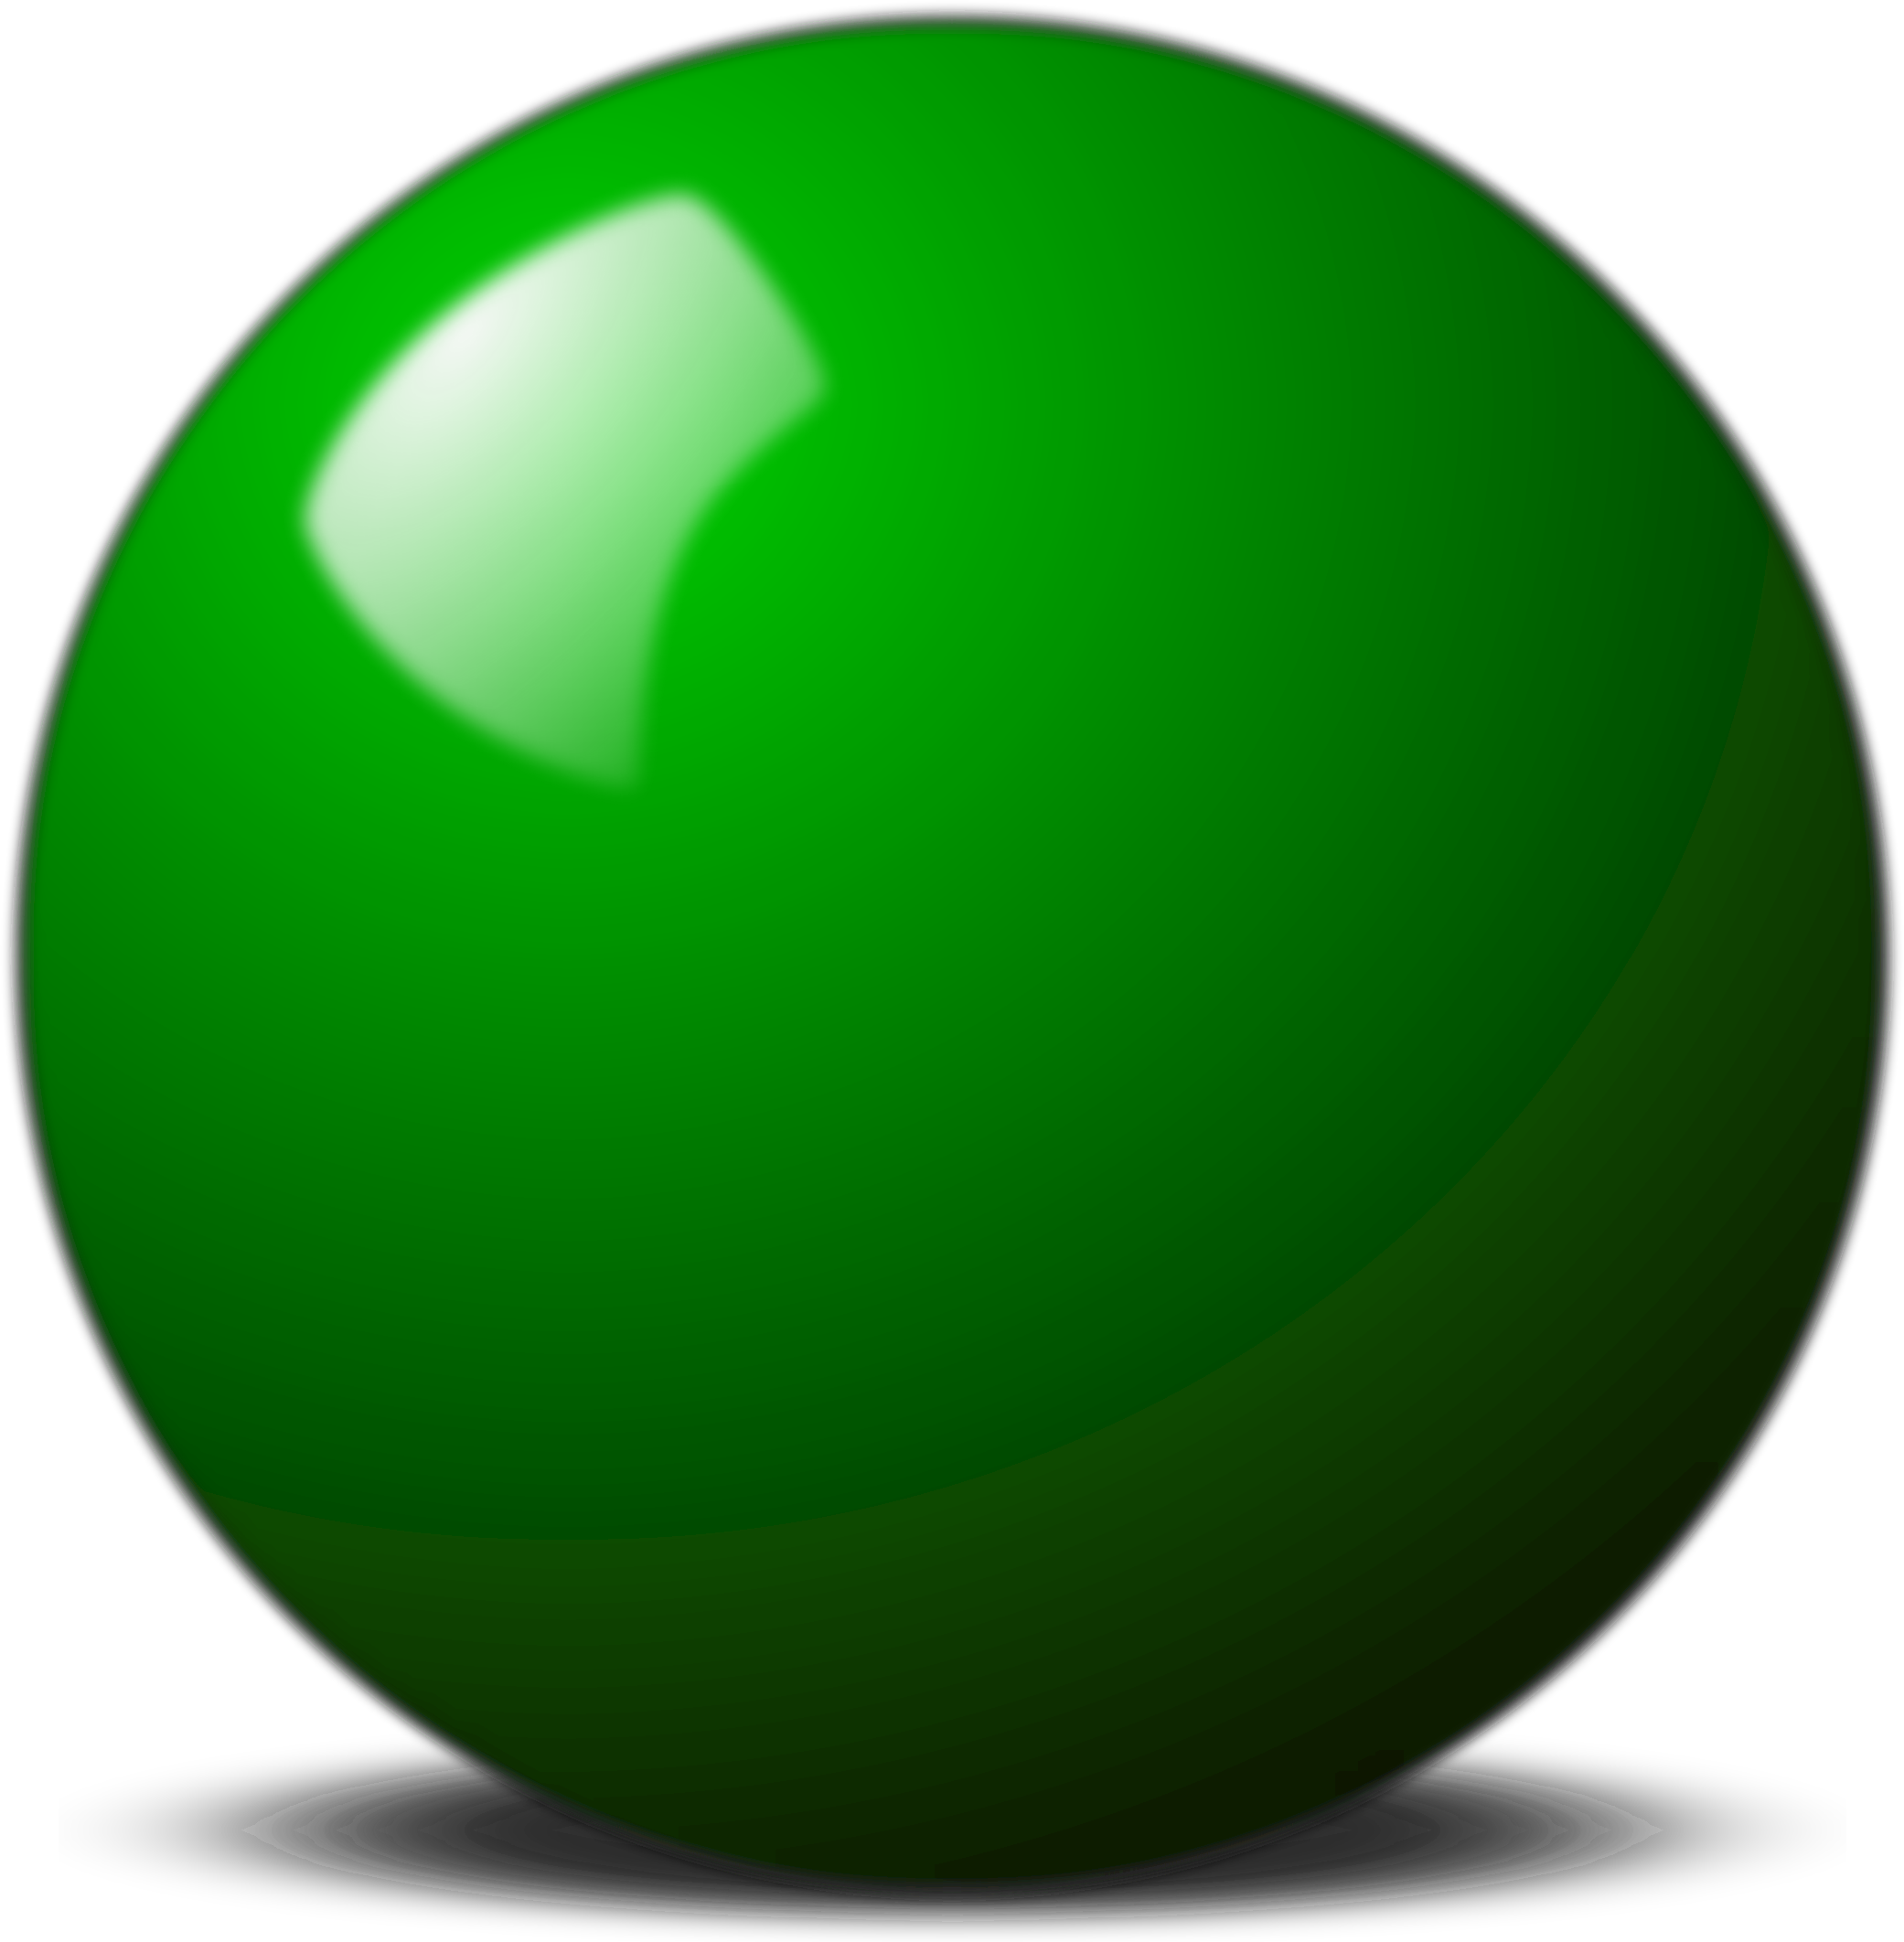 Green Snooker Ball by kuba